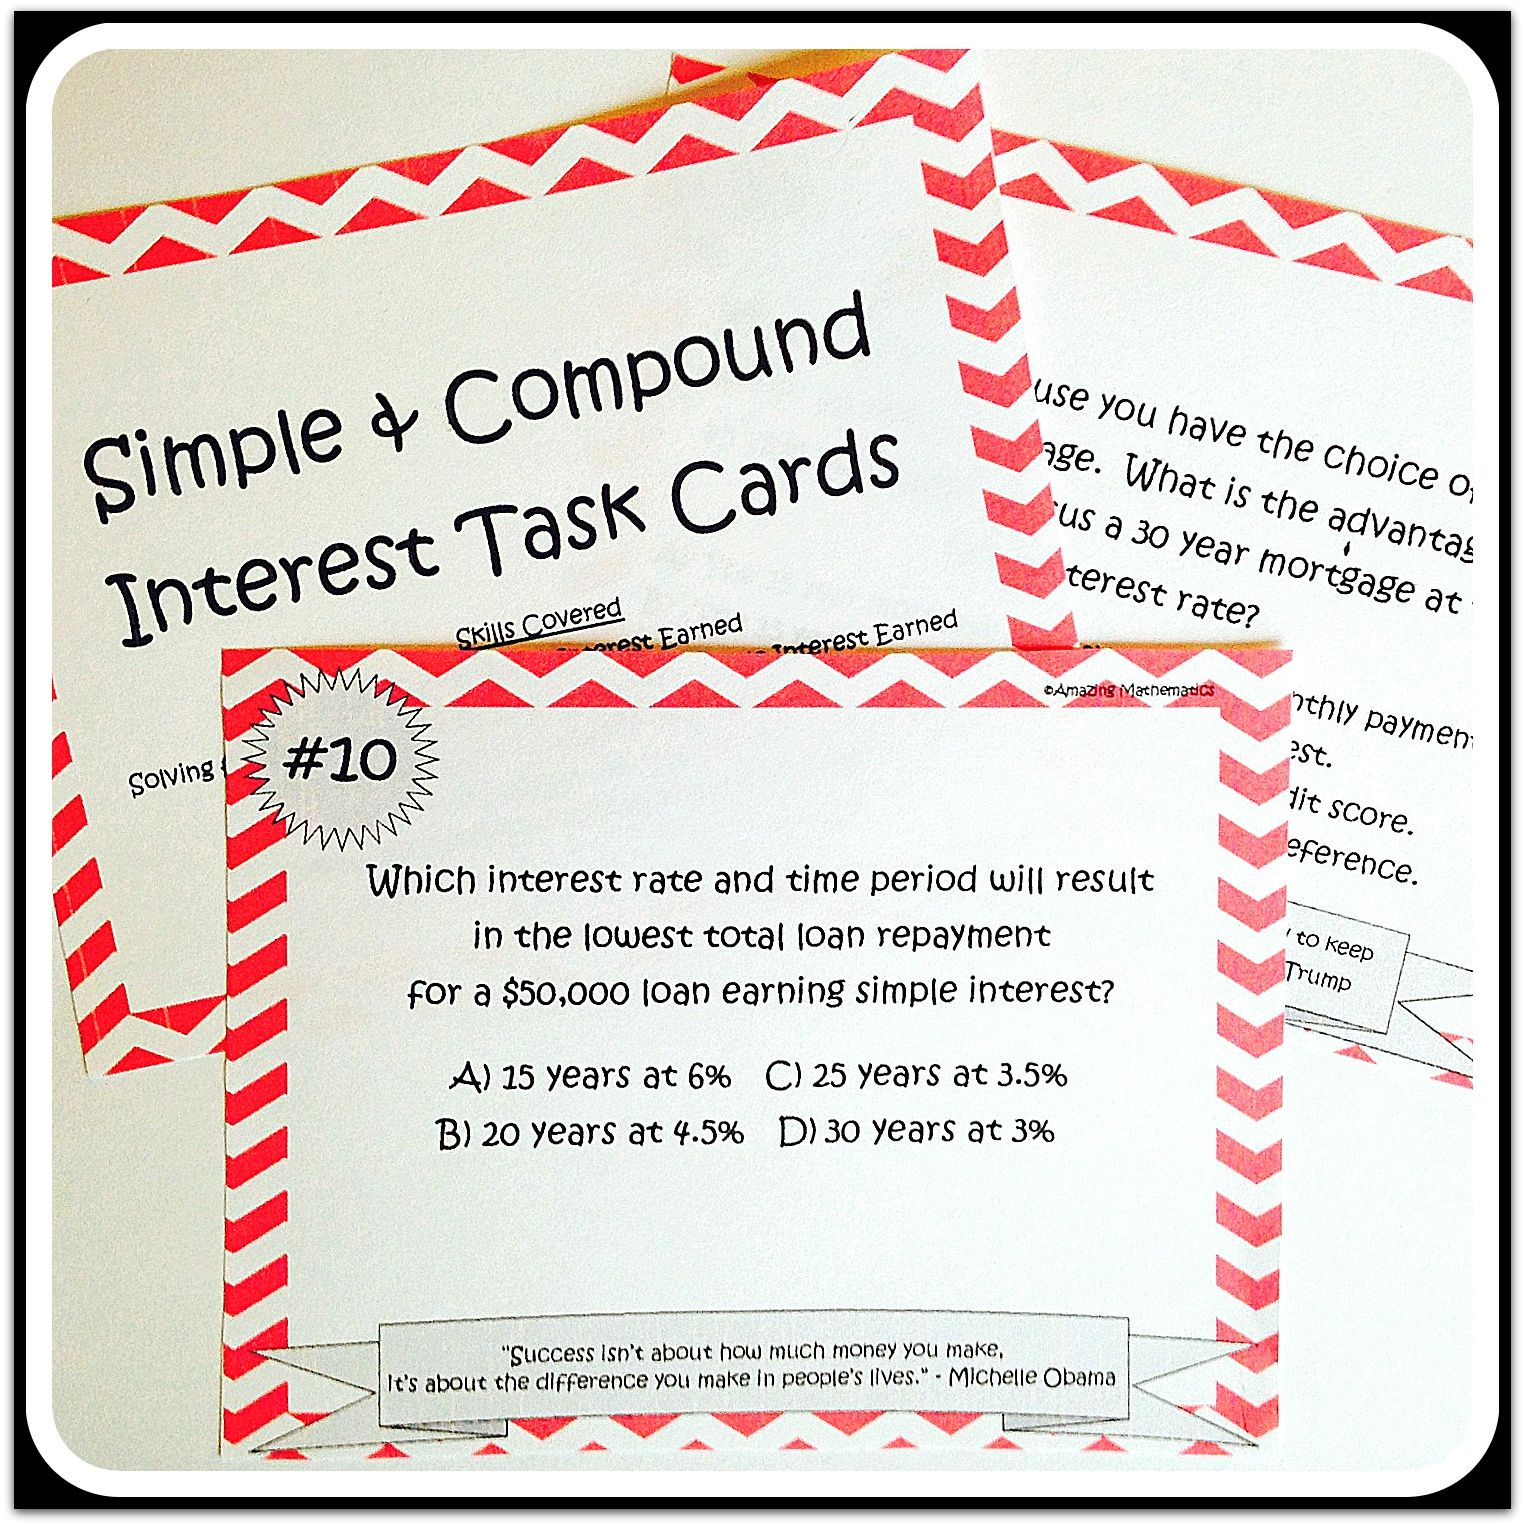 Simple \u0026 Compound Interest Task Cards   Financial literacy worksheets [ 1526 x 1525 Pixel ]